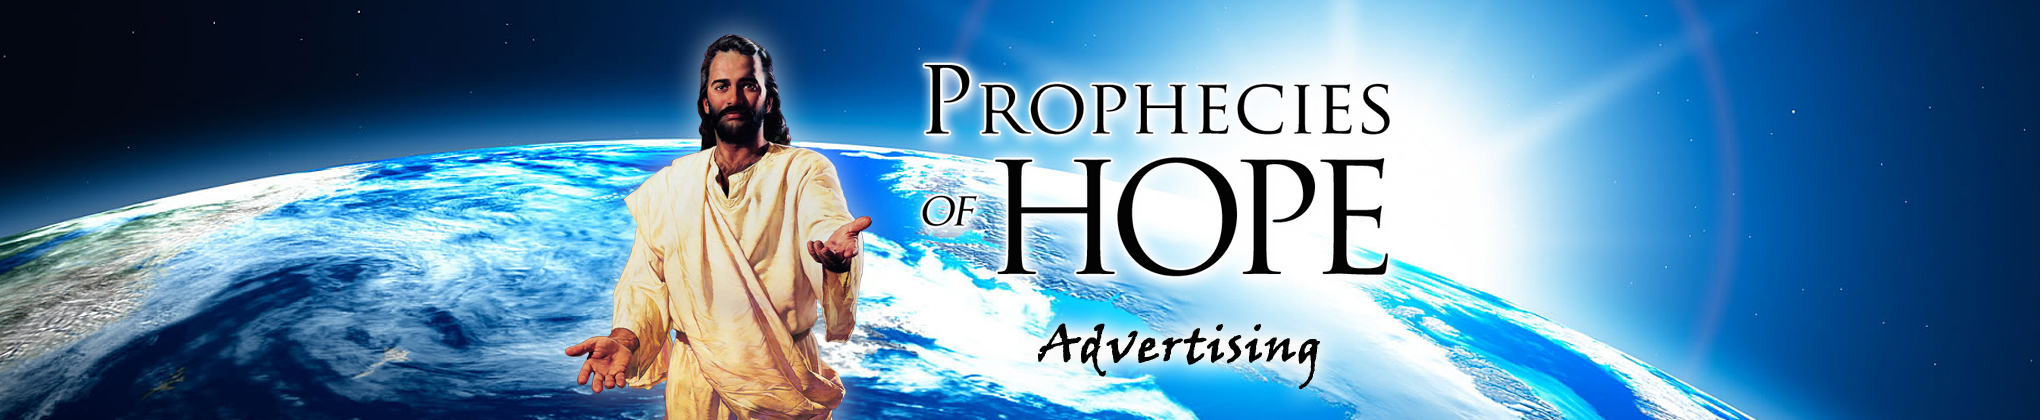 Prophecies of HOPE Web banner